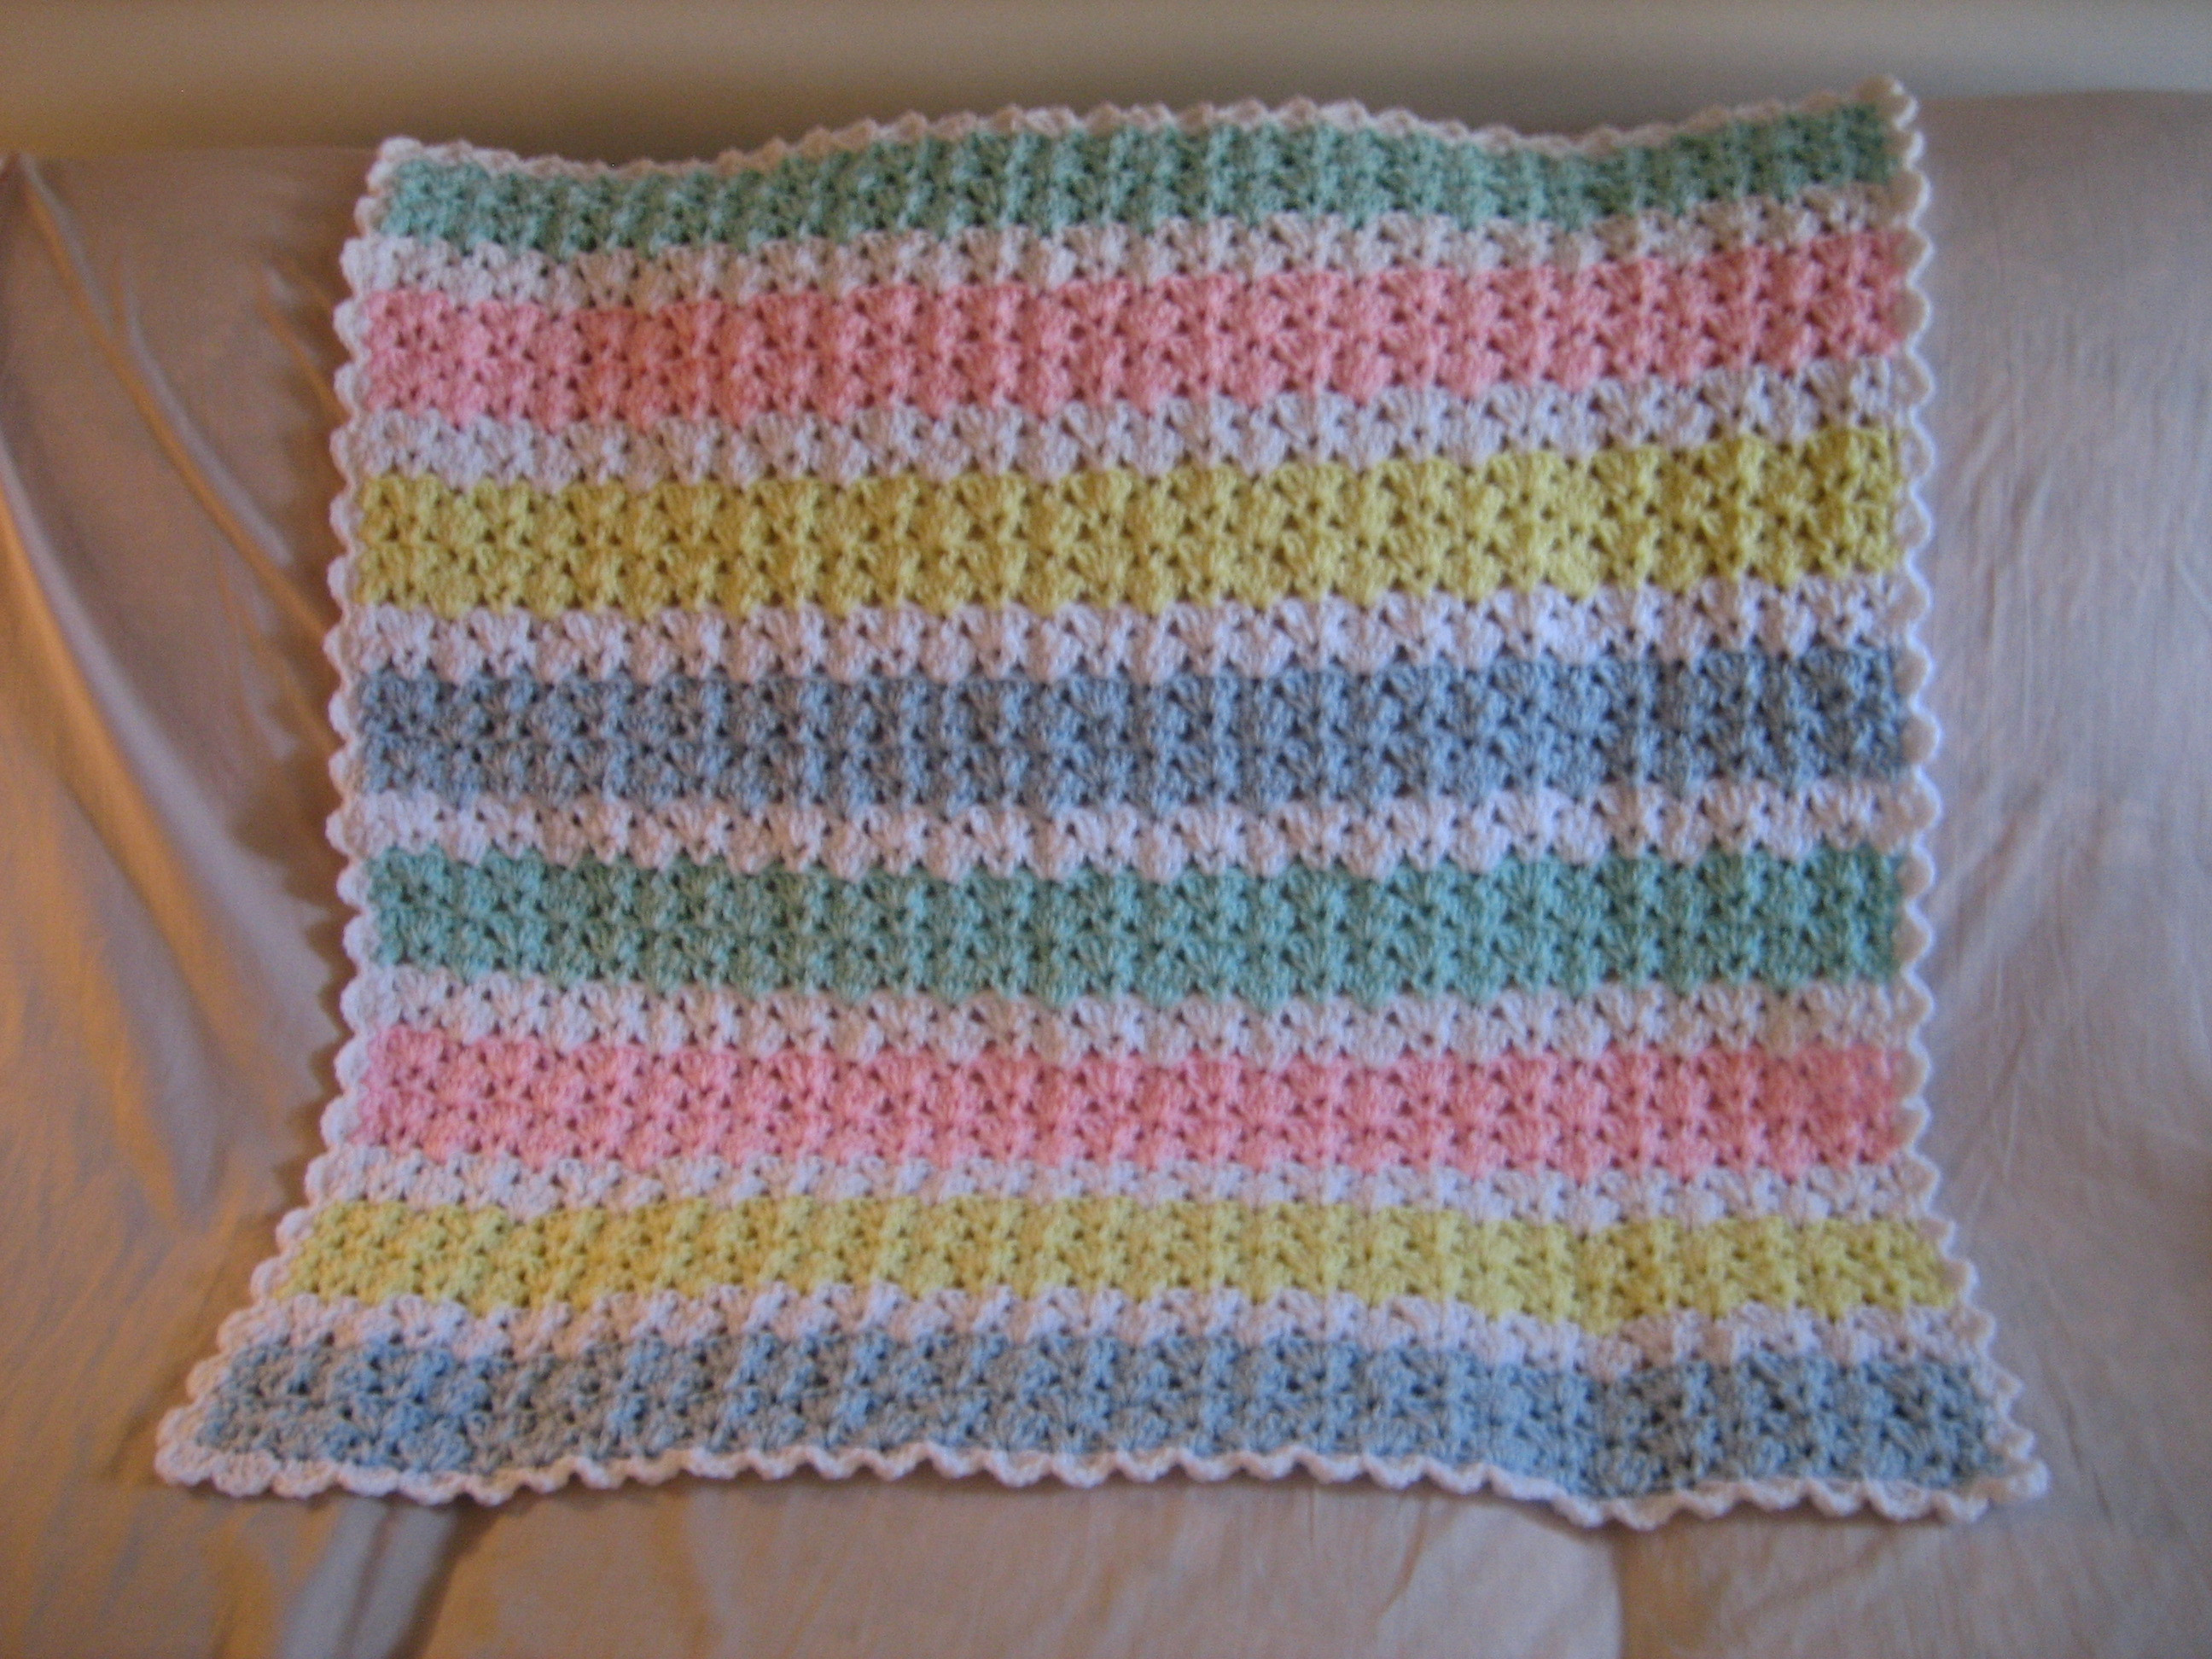 Free Baby Blanket Patterns New Free Crochet Baby Afghan Patterns Crochet and Knit Of Amazing 49 Images Free Baby Blanket Patterns